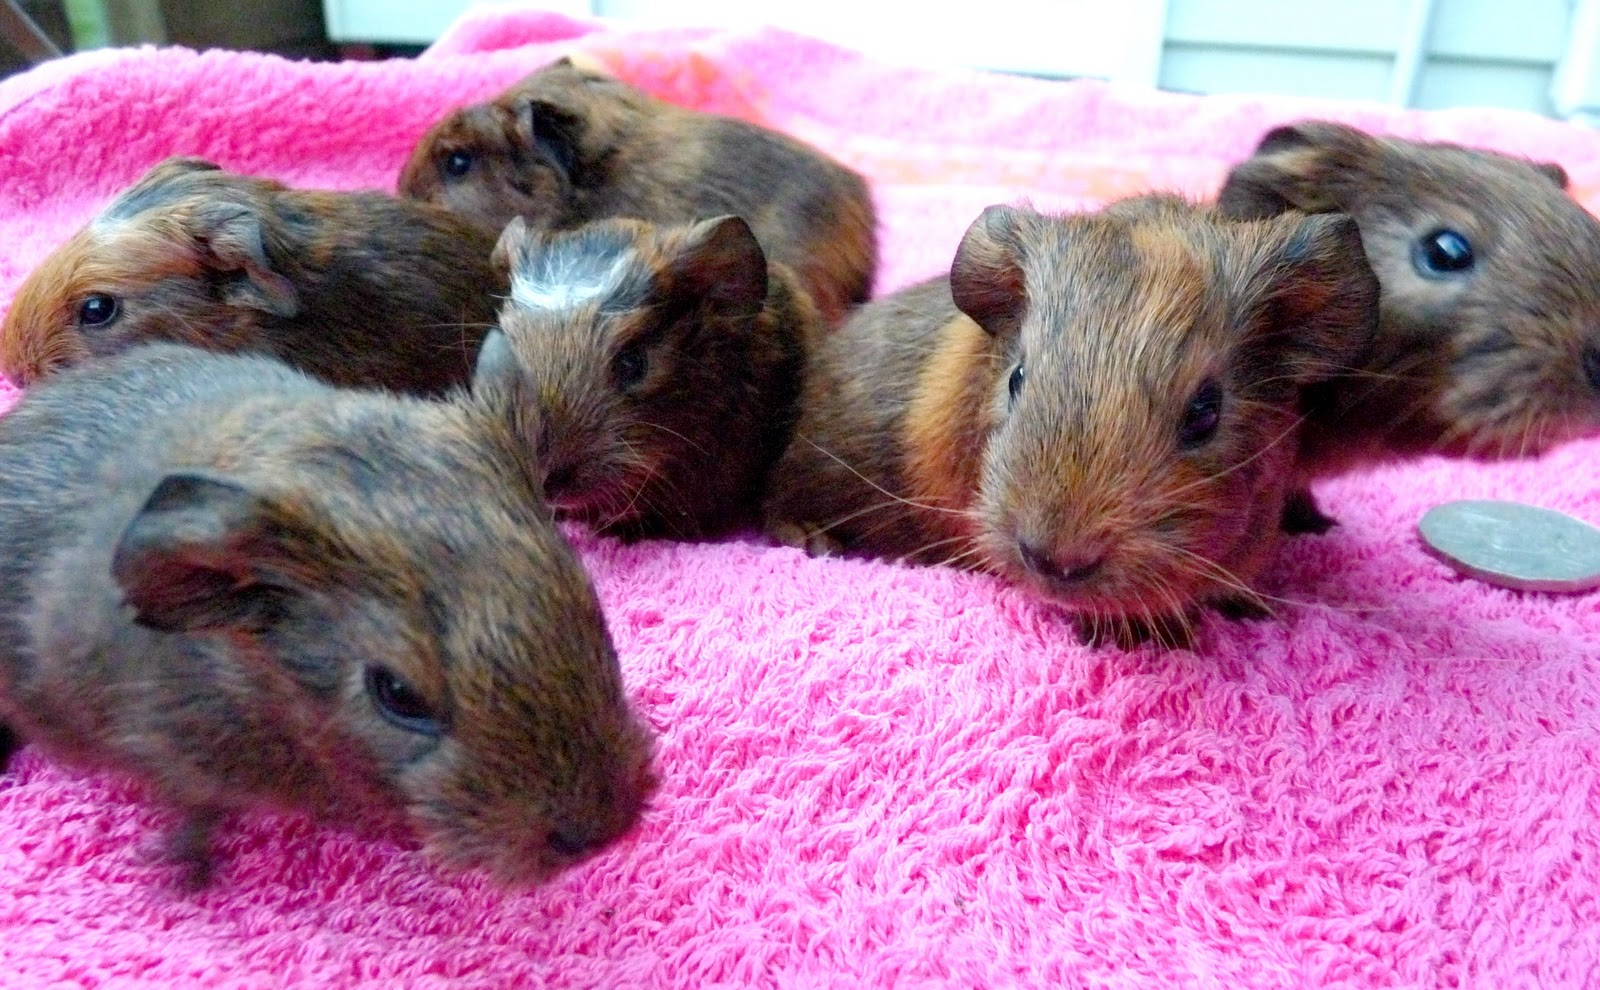 Sweetie The World S Oldest Guinea Pig